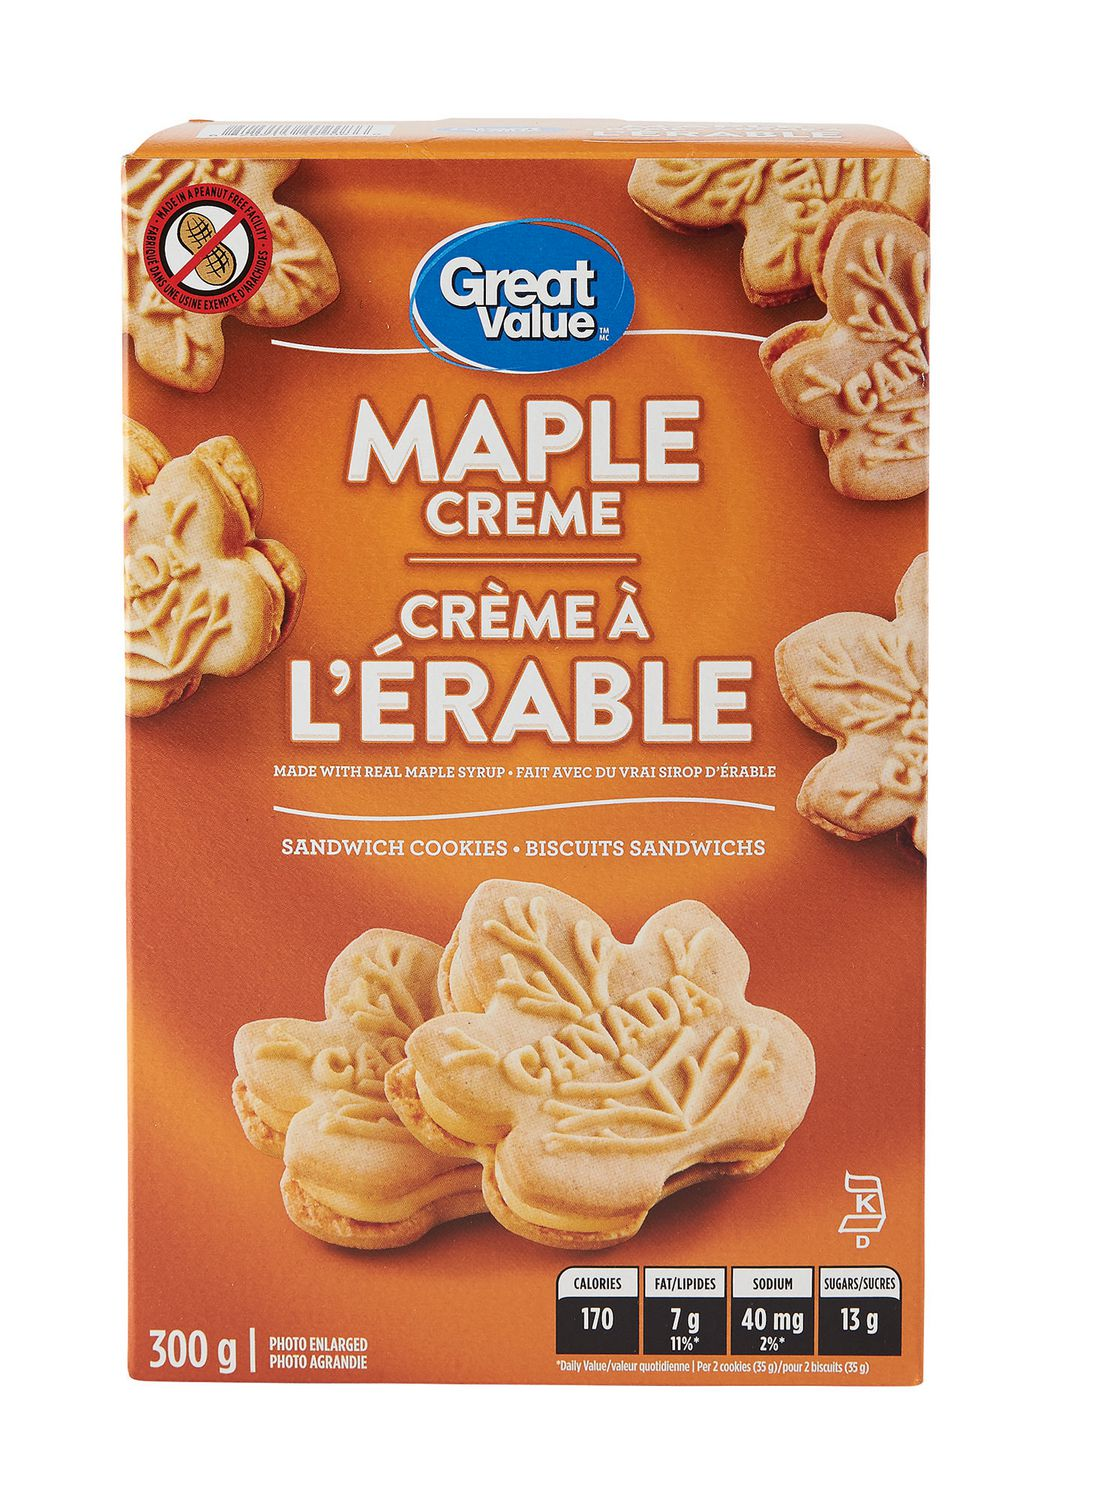 Great Value Maple Creme Sandwich Cookies